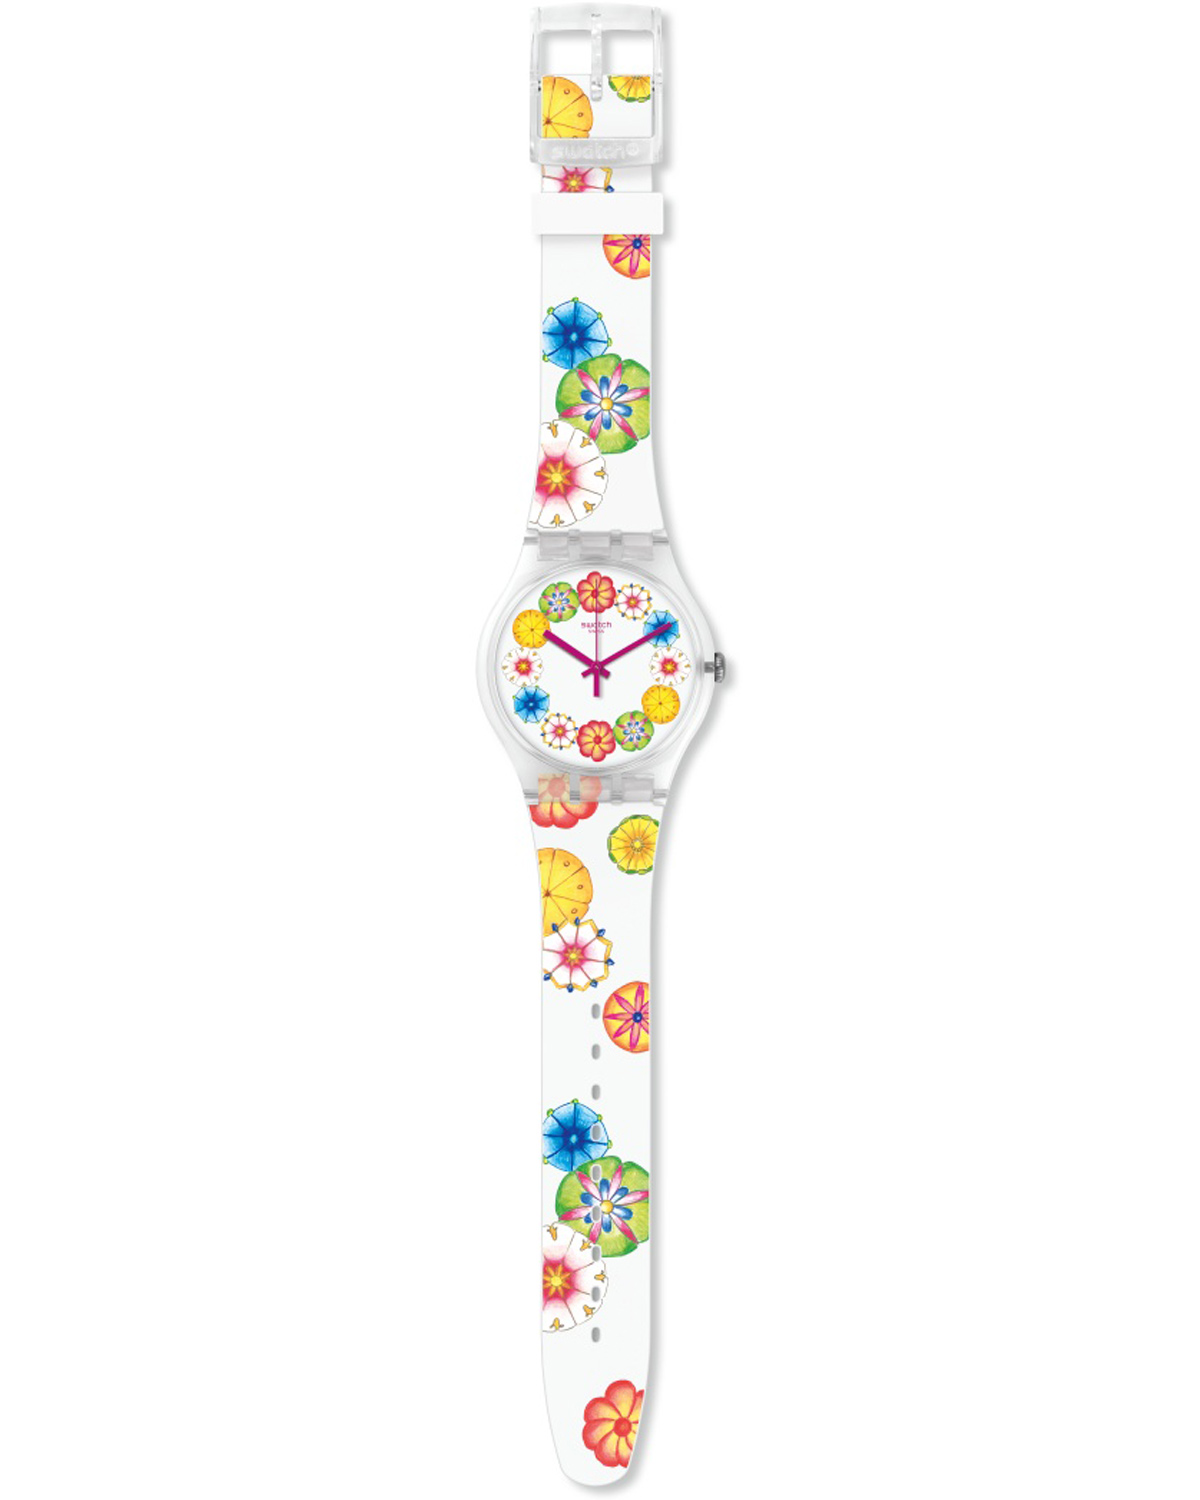 Ρολόι SWATCH Countryside Kumquat Multicolor Silicone Strap - SUOK127 ... d2cbba0d066